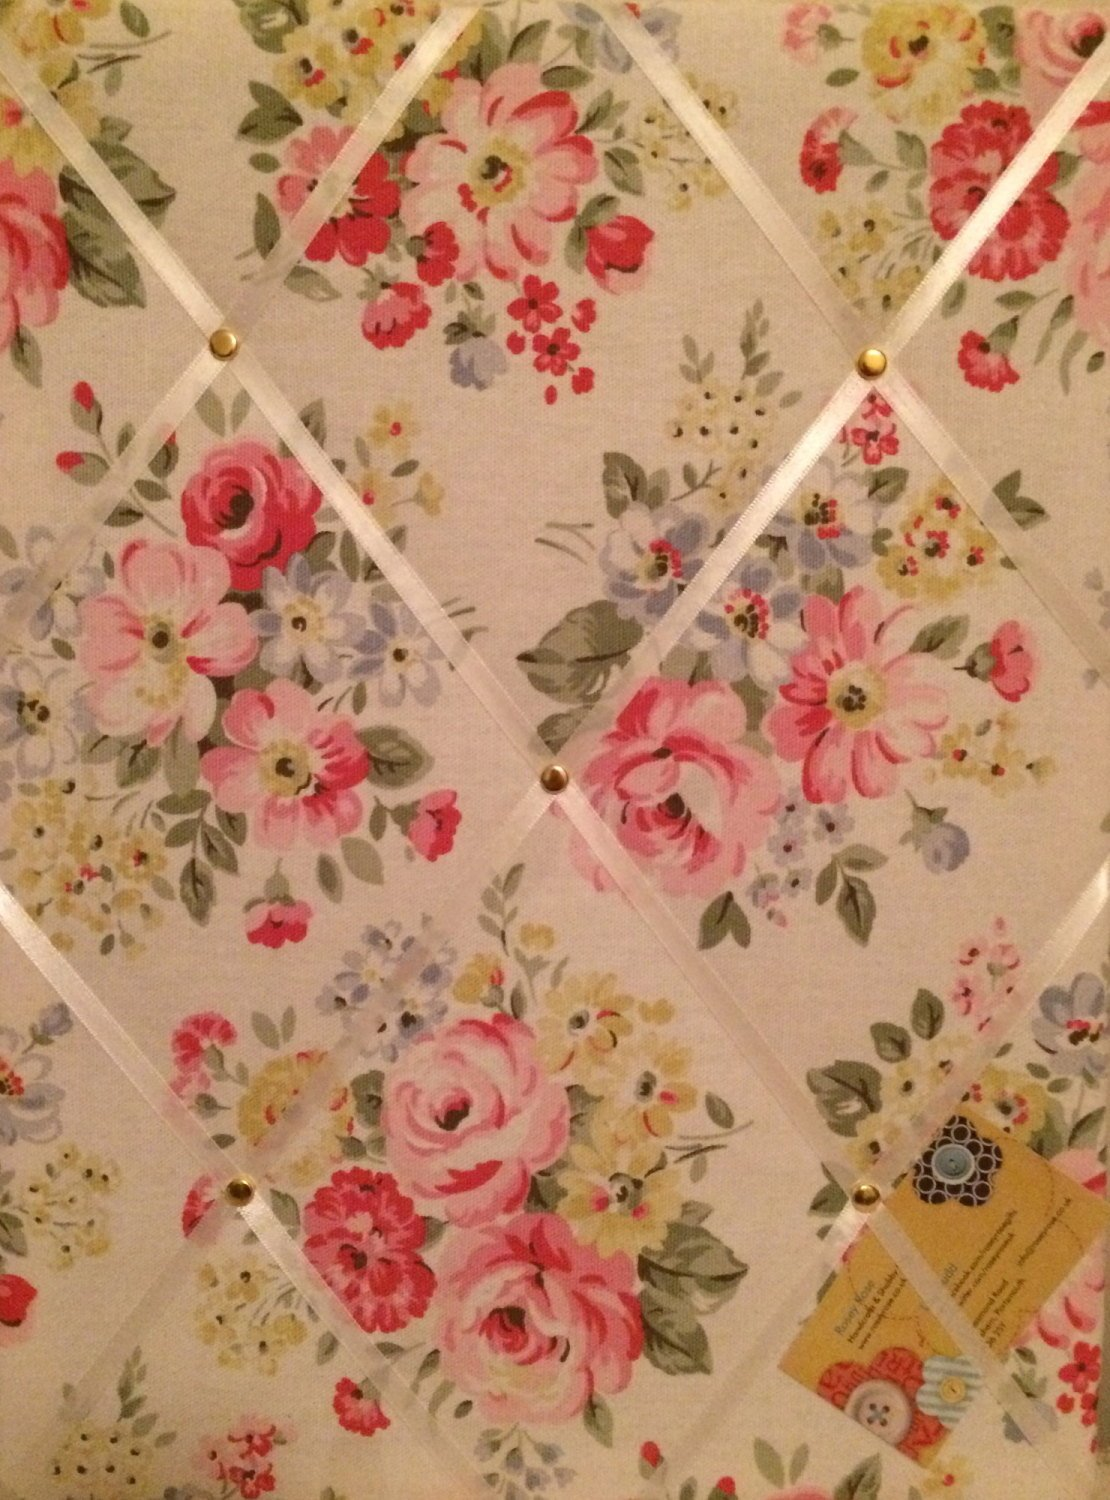 Medium 40x30cm Cath Kidston White Spring Bouquet Hand Crafted Fabric Notice